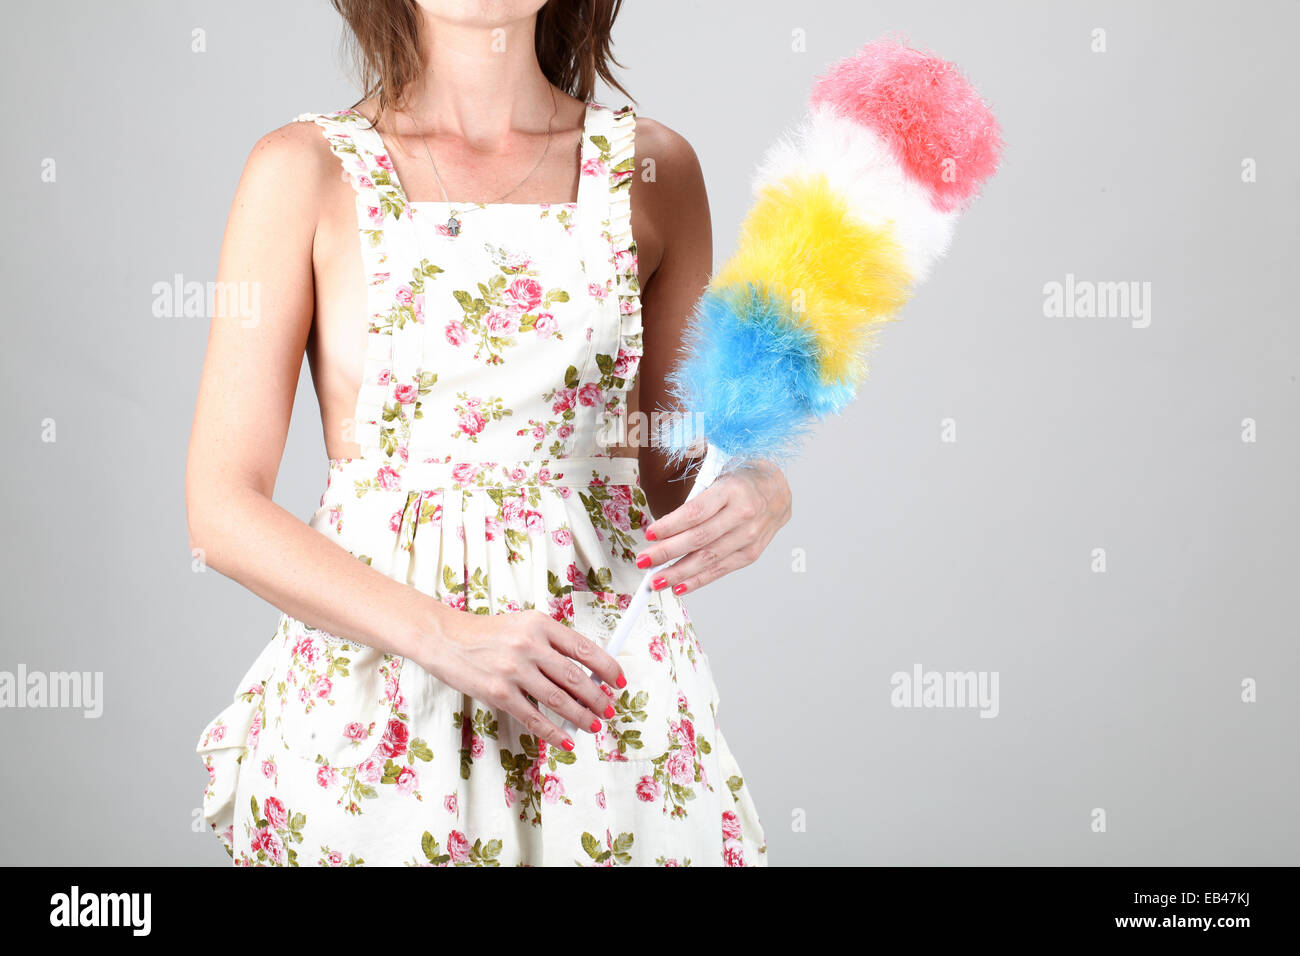 Housewife cleaning the house with feather duster. Model released - Stock Image